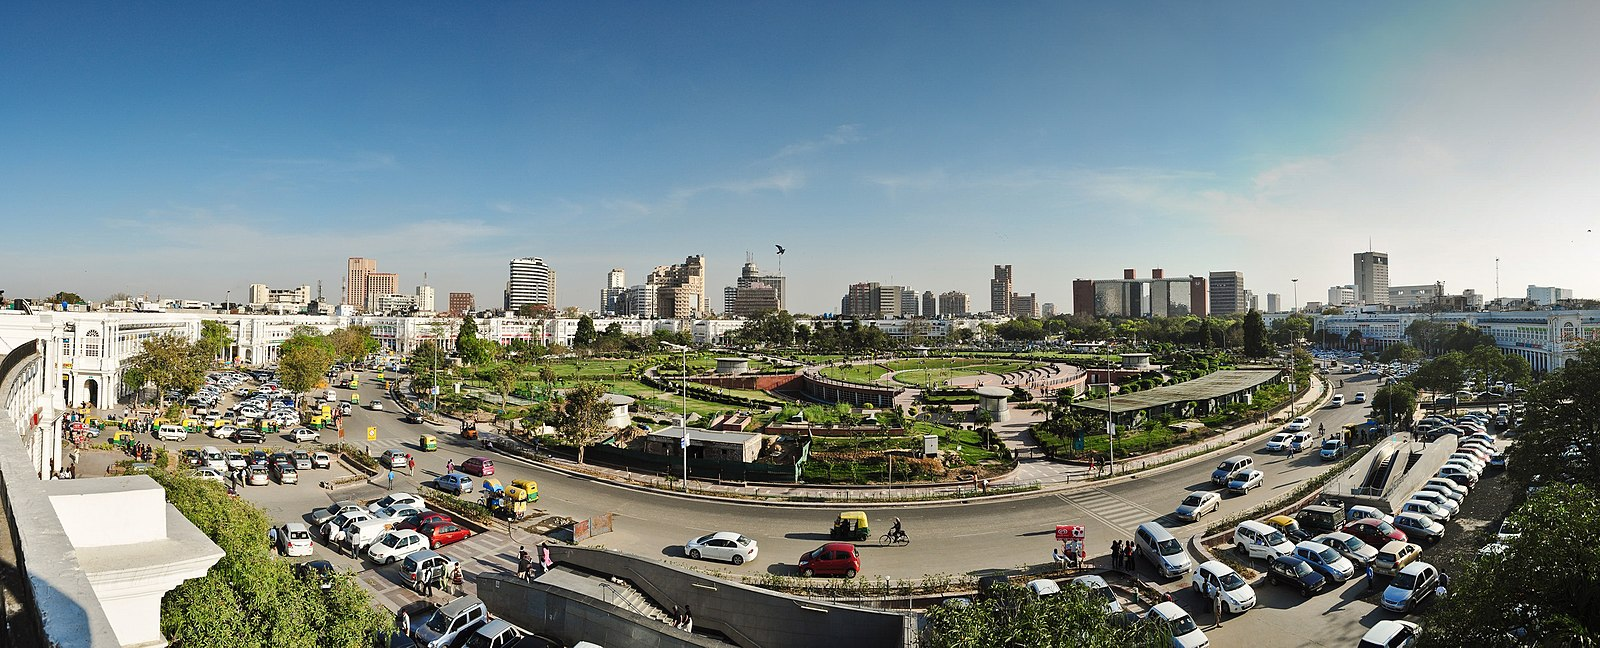 Connaught Place in New Delhi is an important economic hub of the National Capital Region. Skyline at Rajiv Chowk.JPG